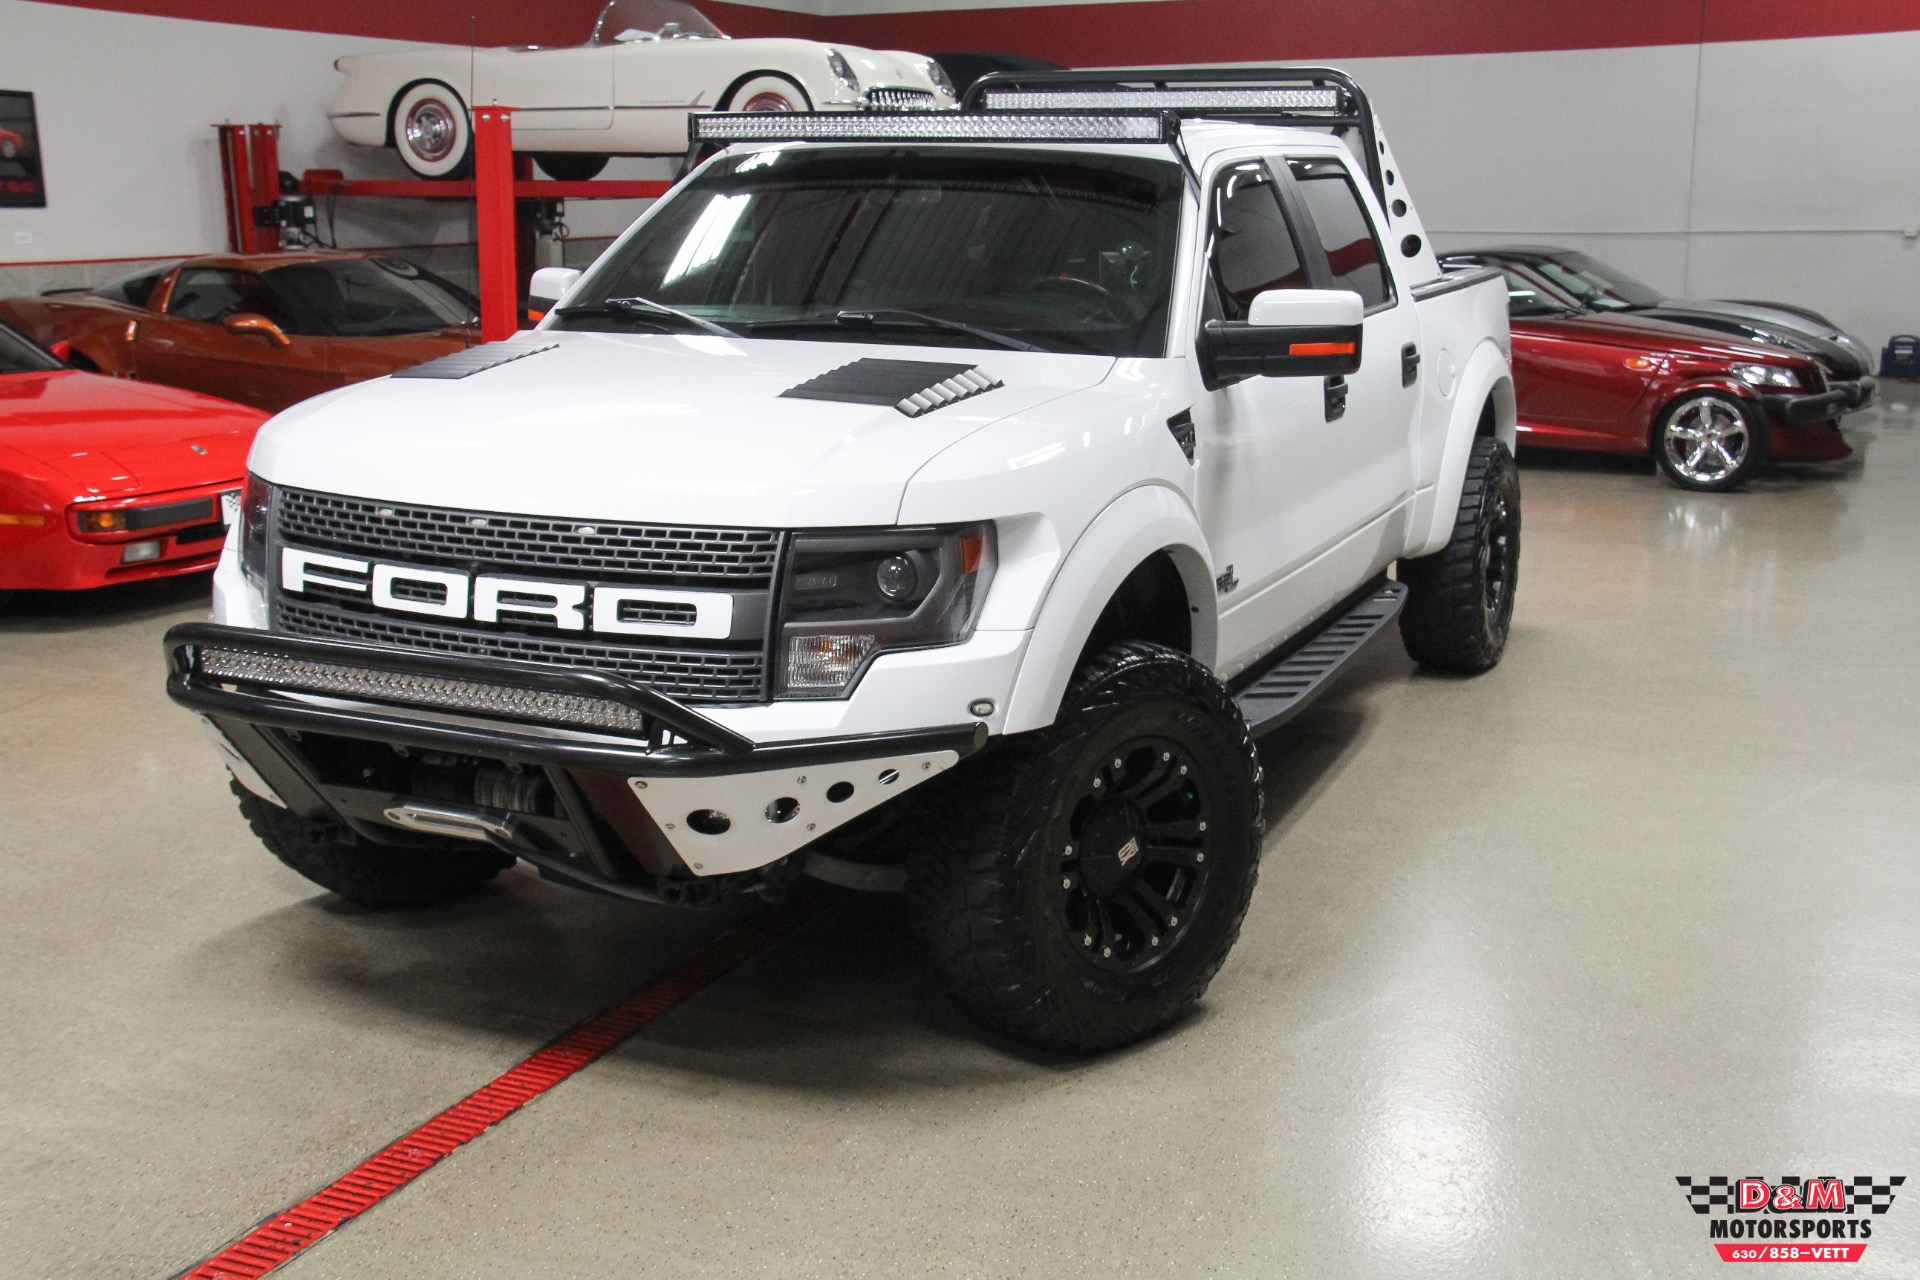 Ford F 150 Svt Raptor For Sale In Chicago Illinois Auto Upcomingcarshq Com